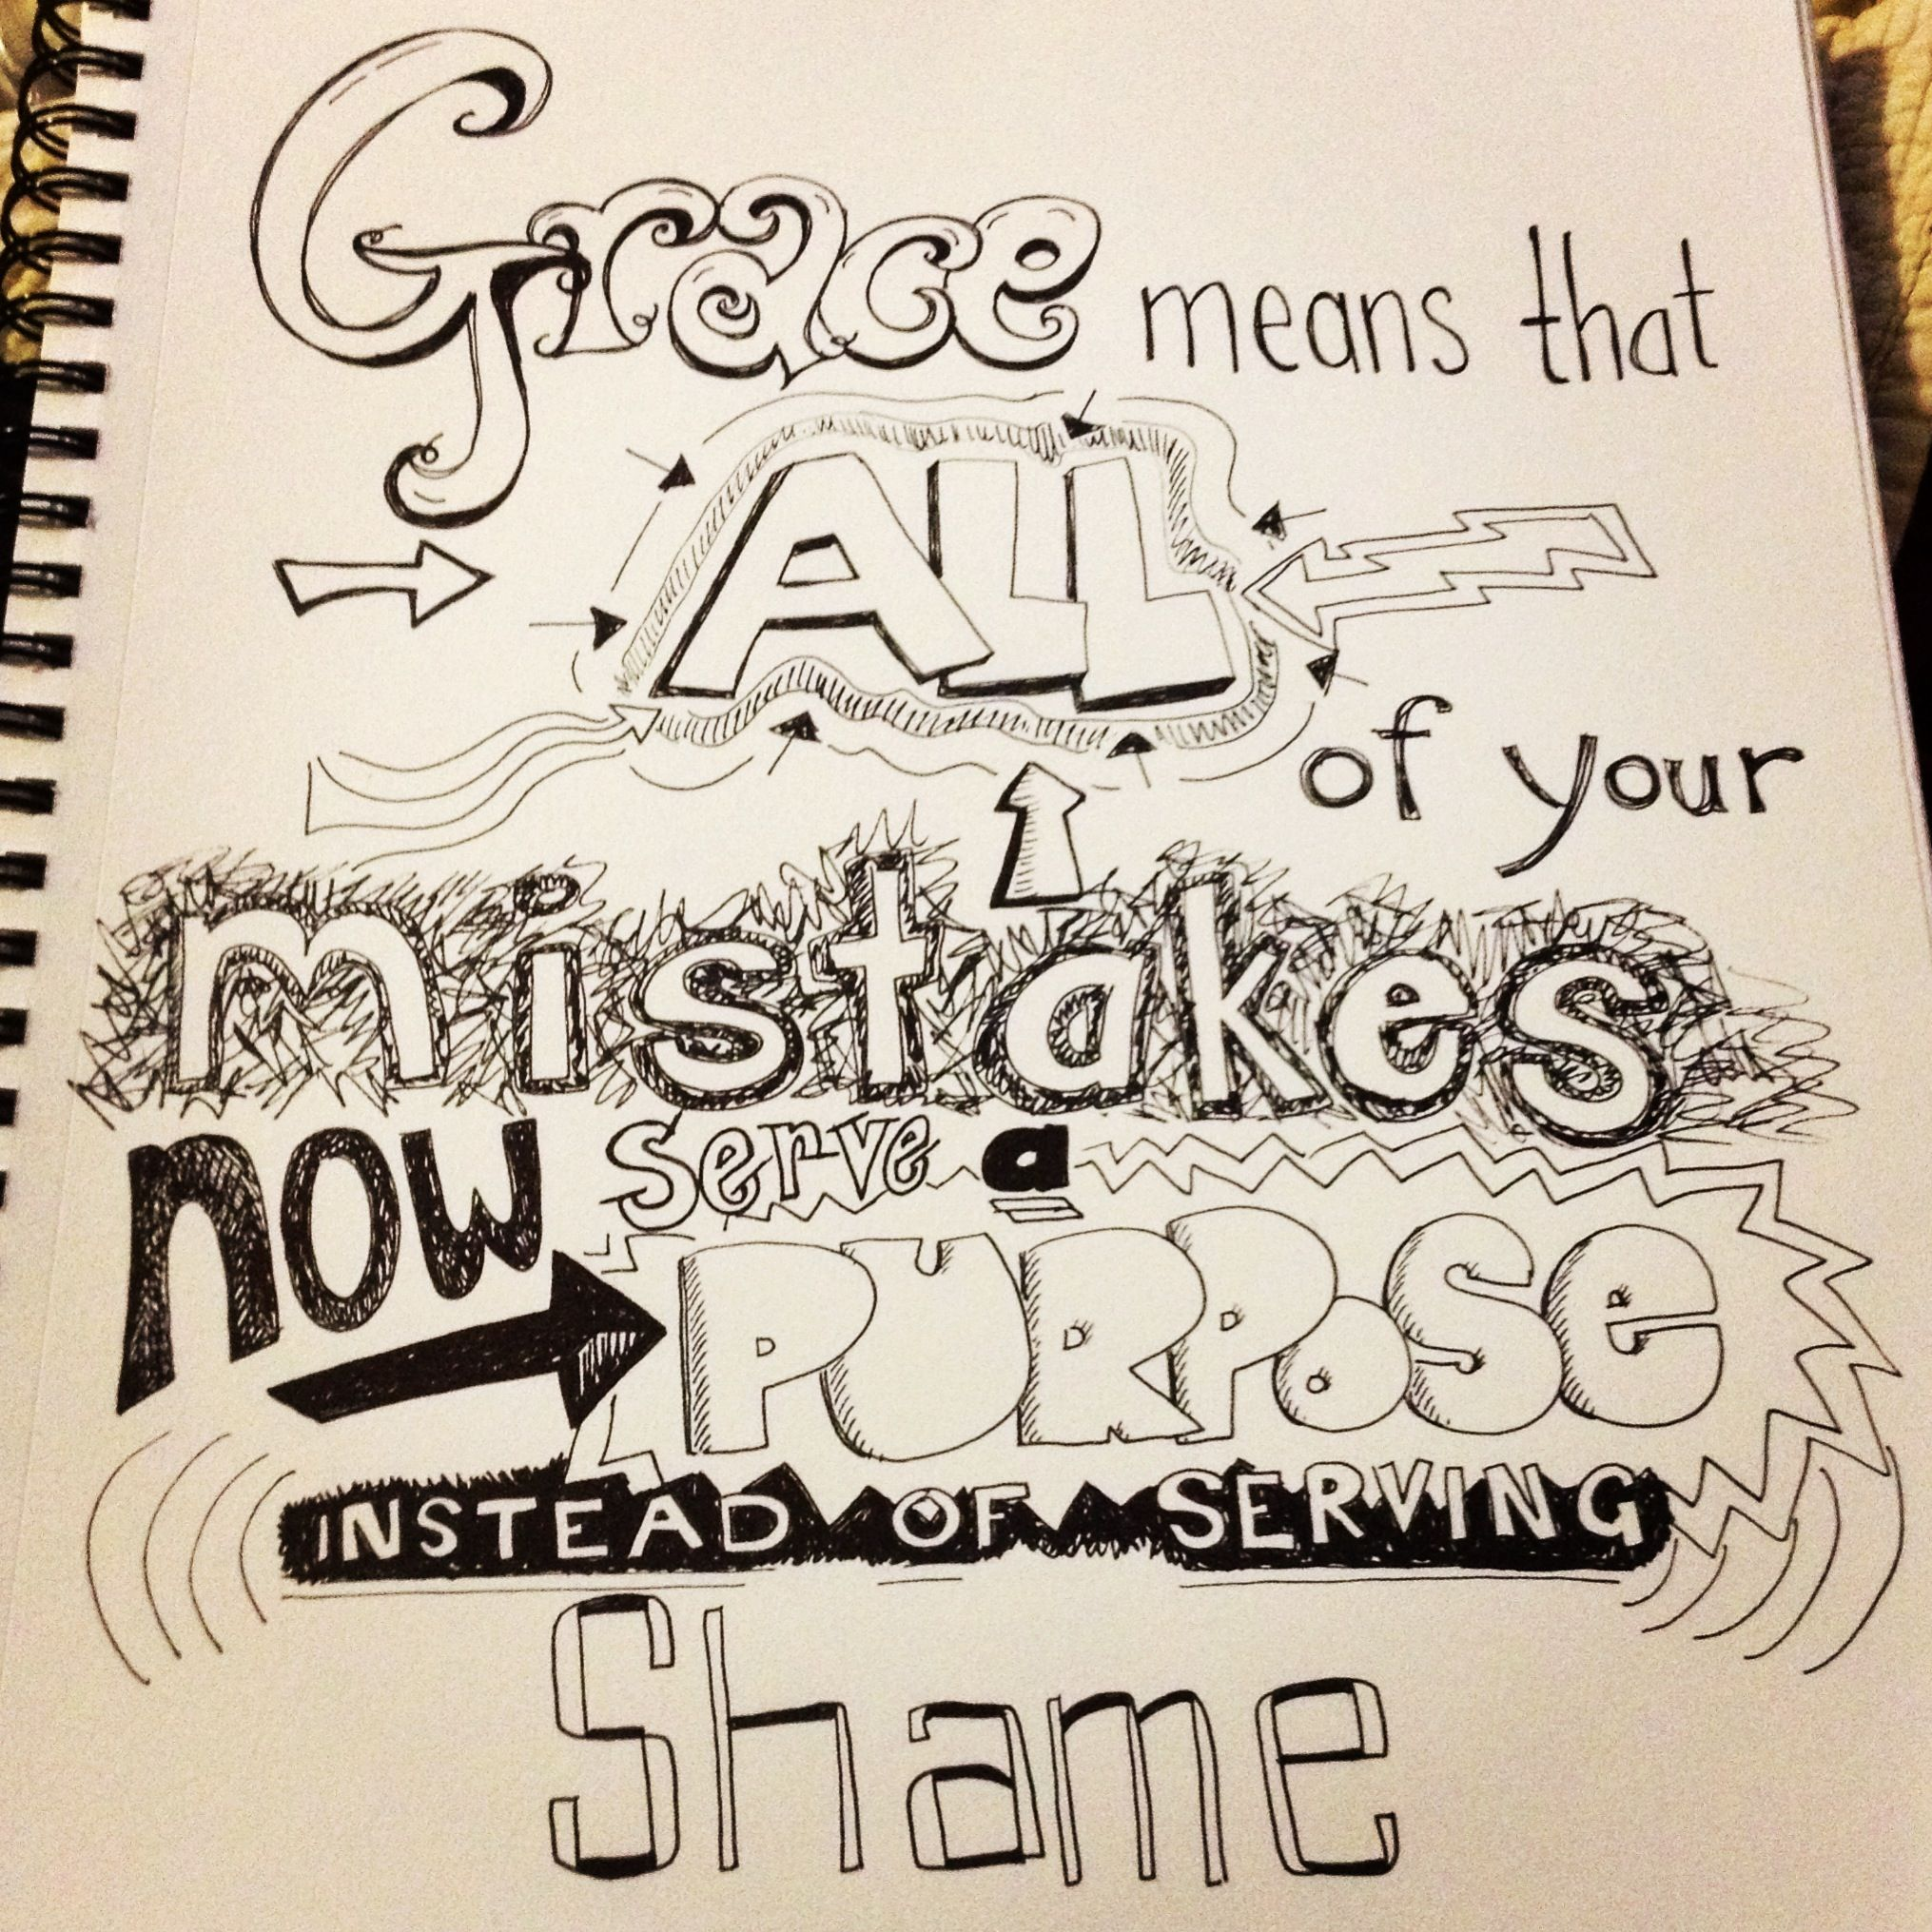 God s grace is for everyone because he loves us all Freehand drawn quote art lettering